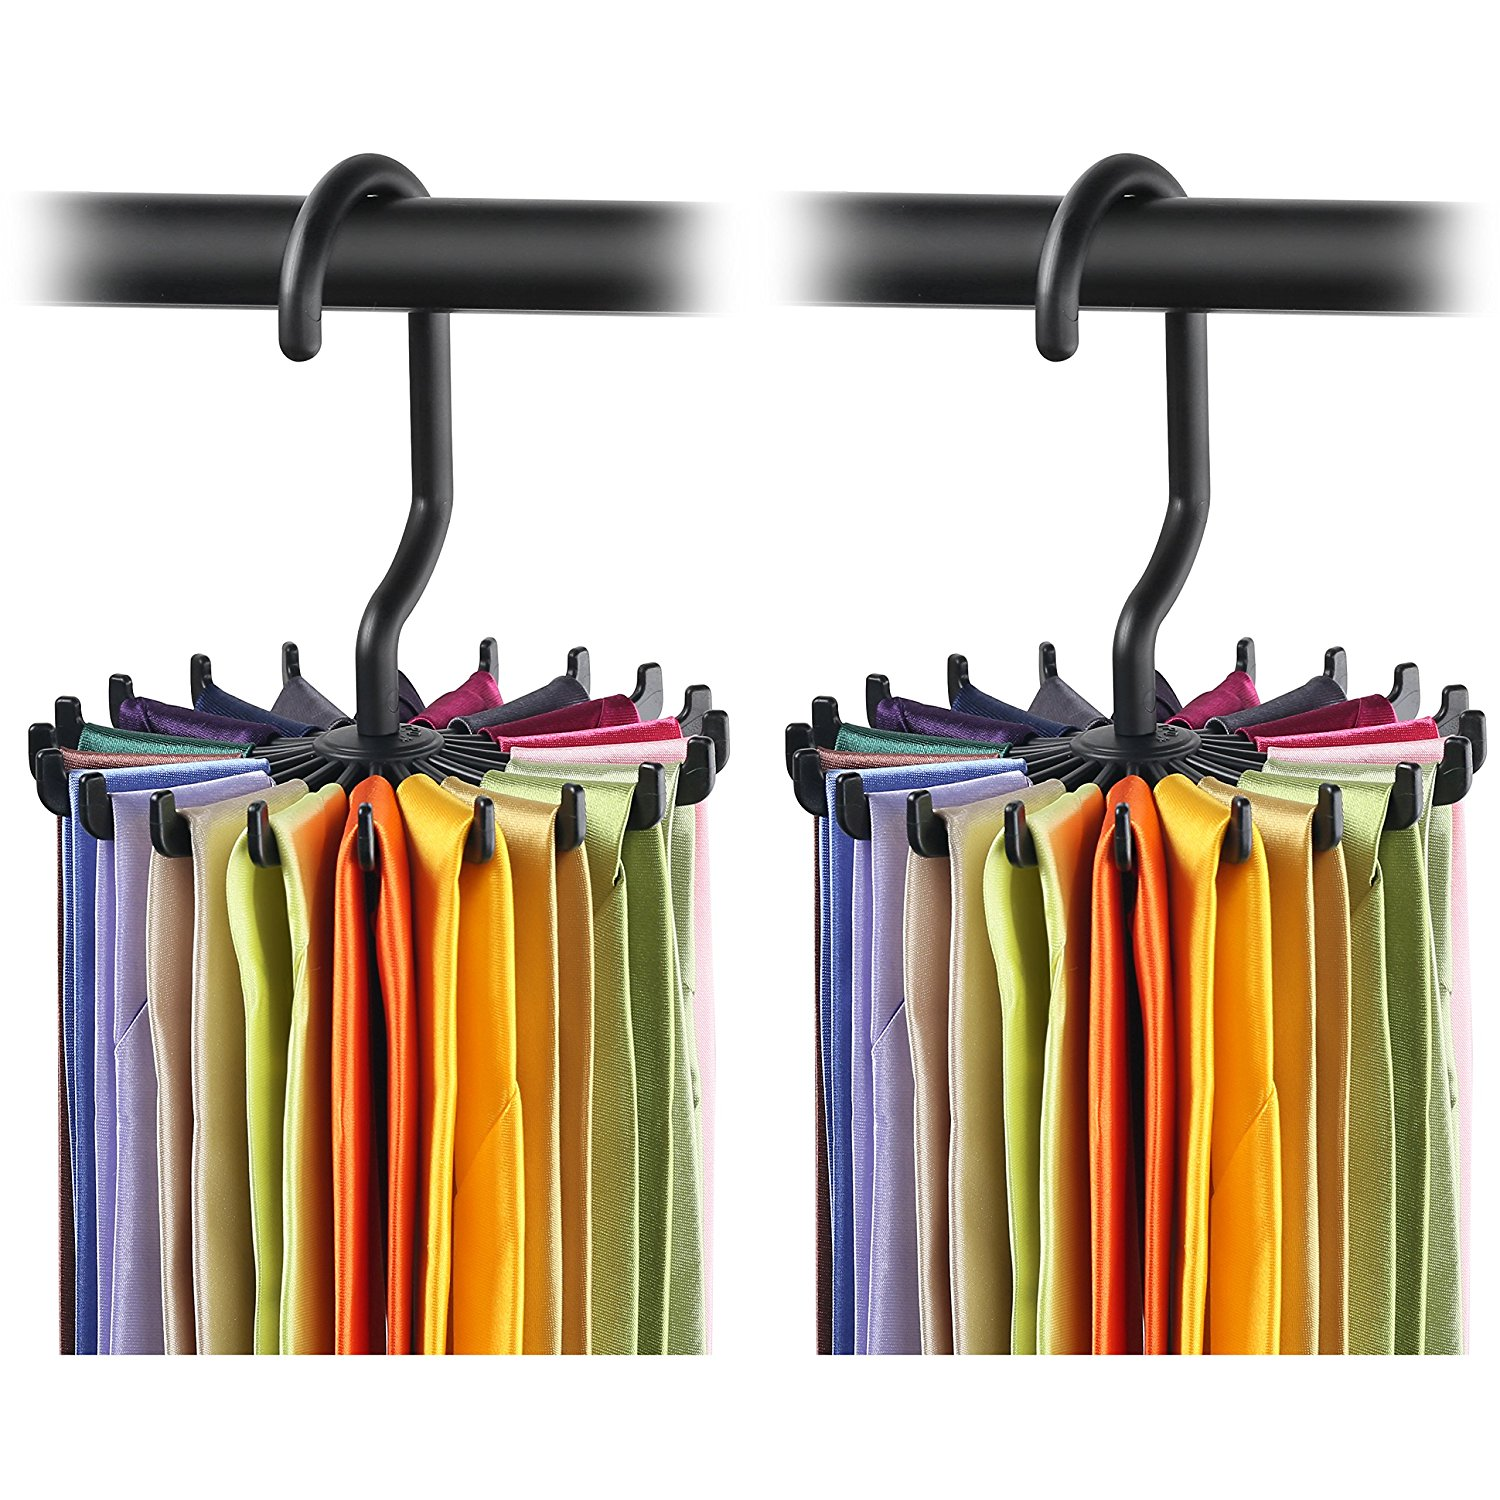 IPOW Twirl Tie Rack Closet Organizer Storage Belt Scarf Hanger Hook Holder,White,5.3 inches,2 Pack